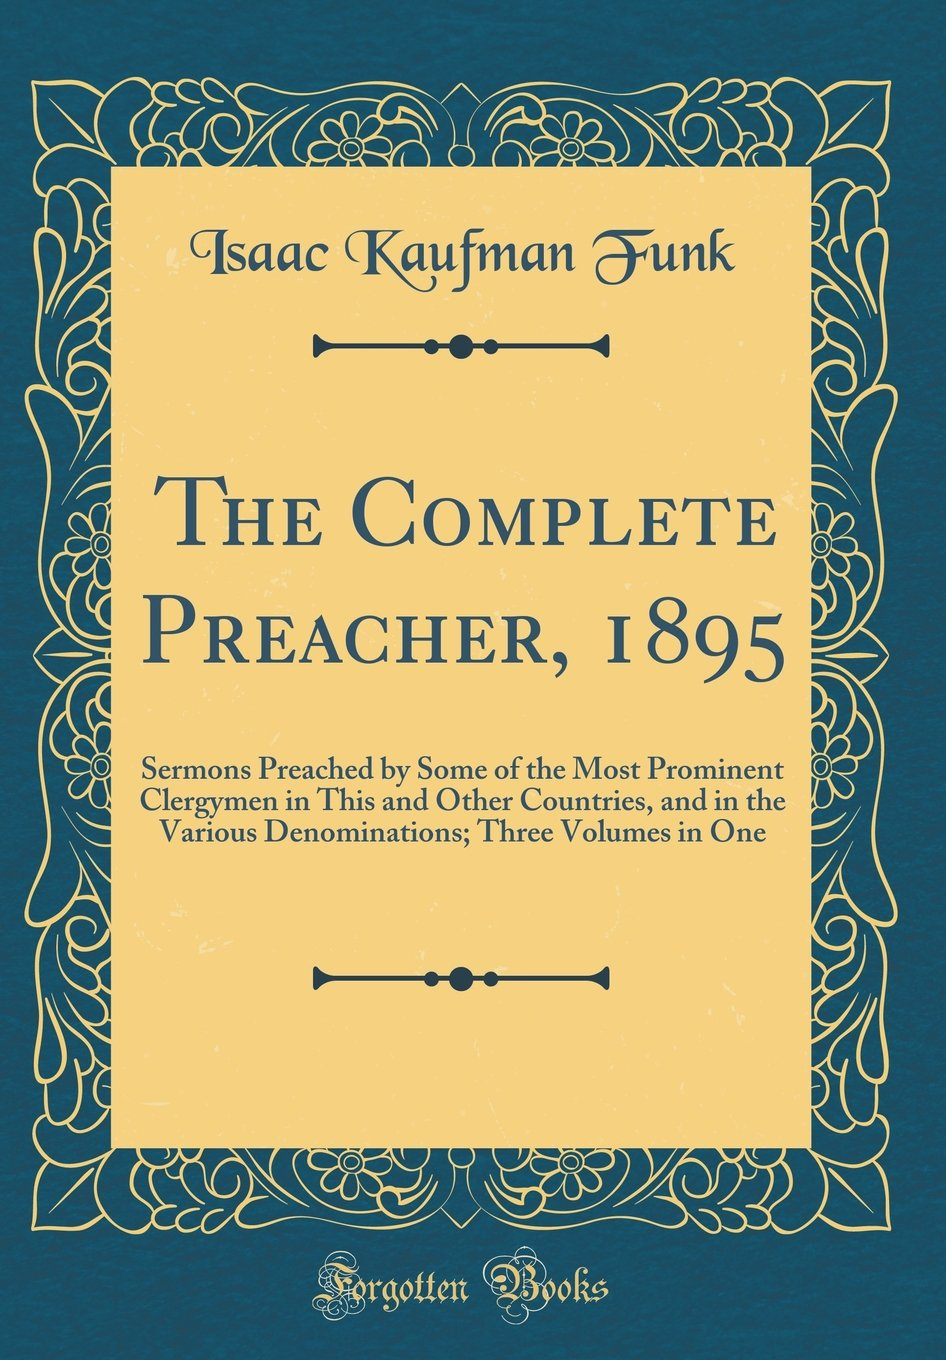 Download The Complete Preacher, 1895: Sermons Preached by Some of the Most Prominent Clergymen in This and Other Countries, and in the Various Denominations; Three Volumes in One (Classic Reprint) ebook